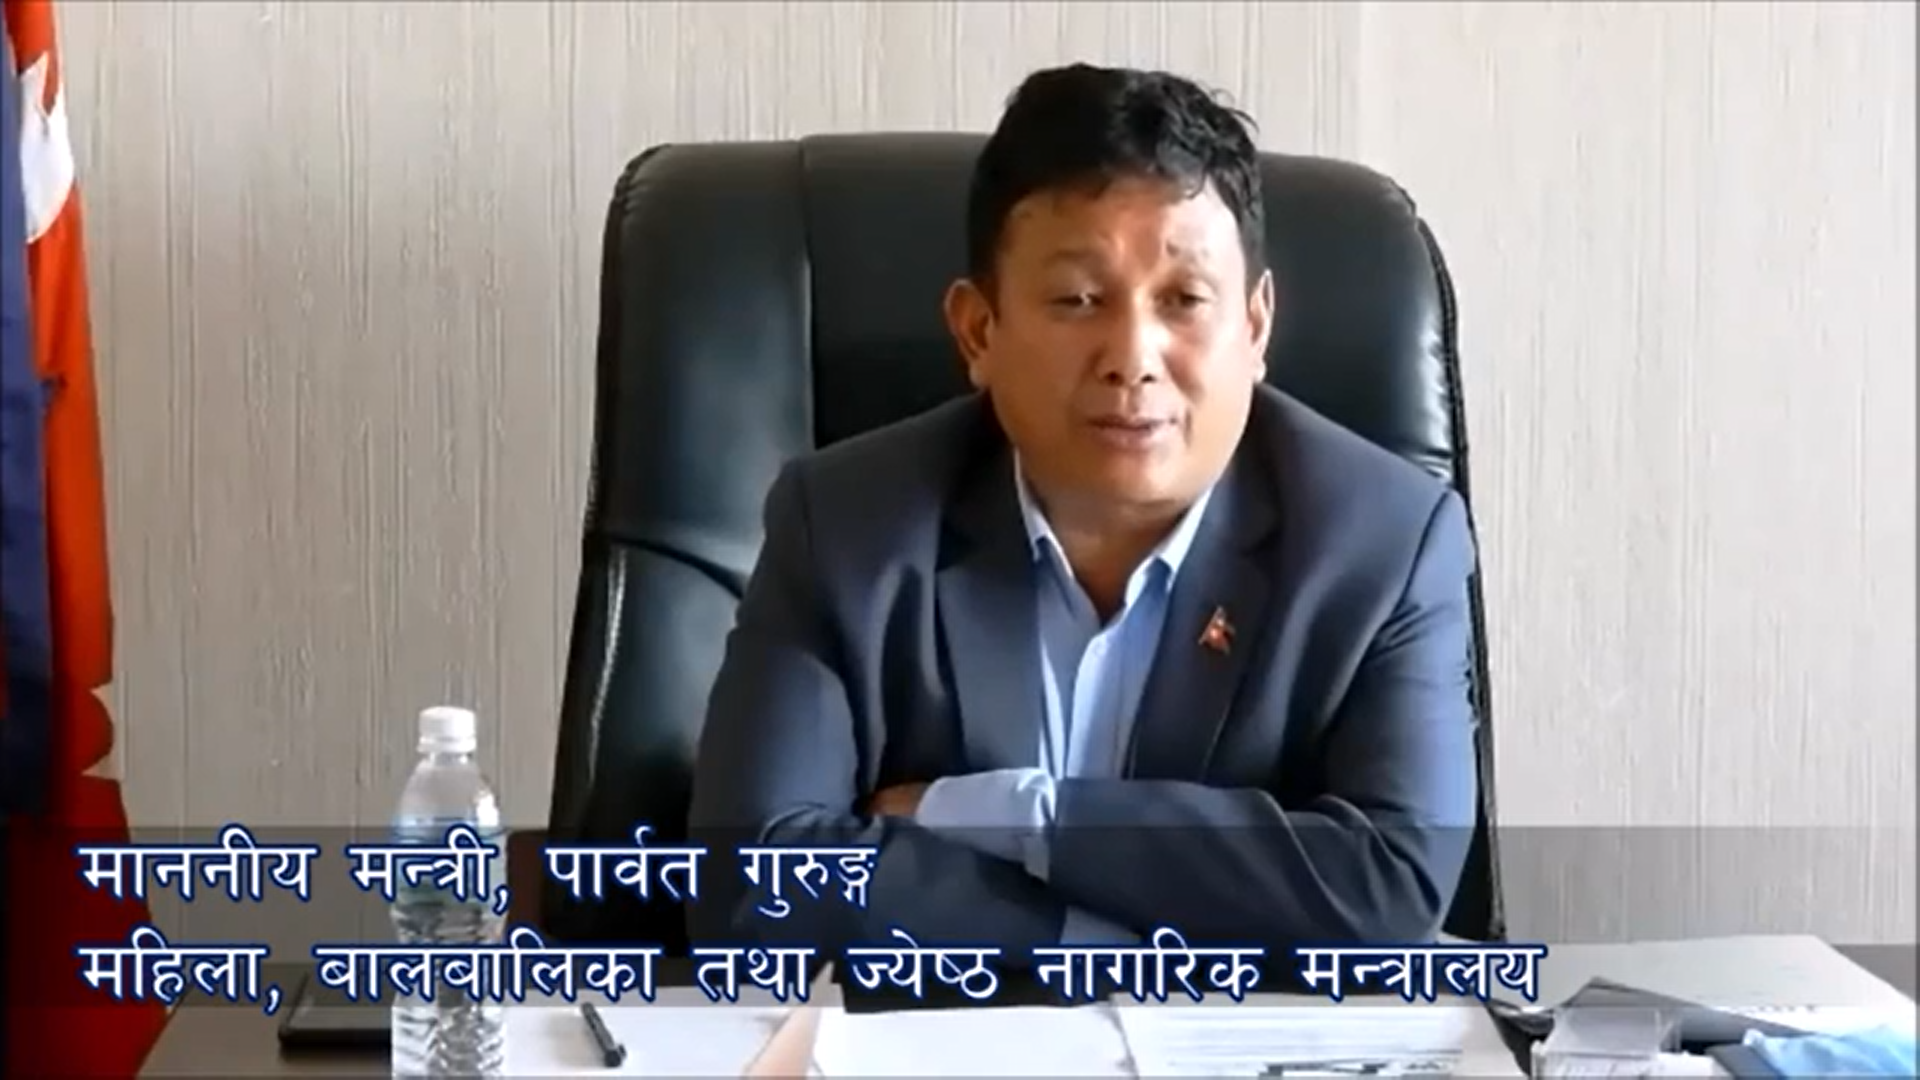 Hon. Minister Parbat Gurung, Ministry of Women, Children and Senior Citizen